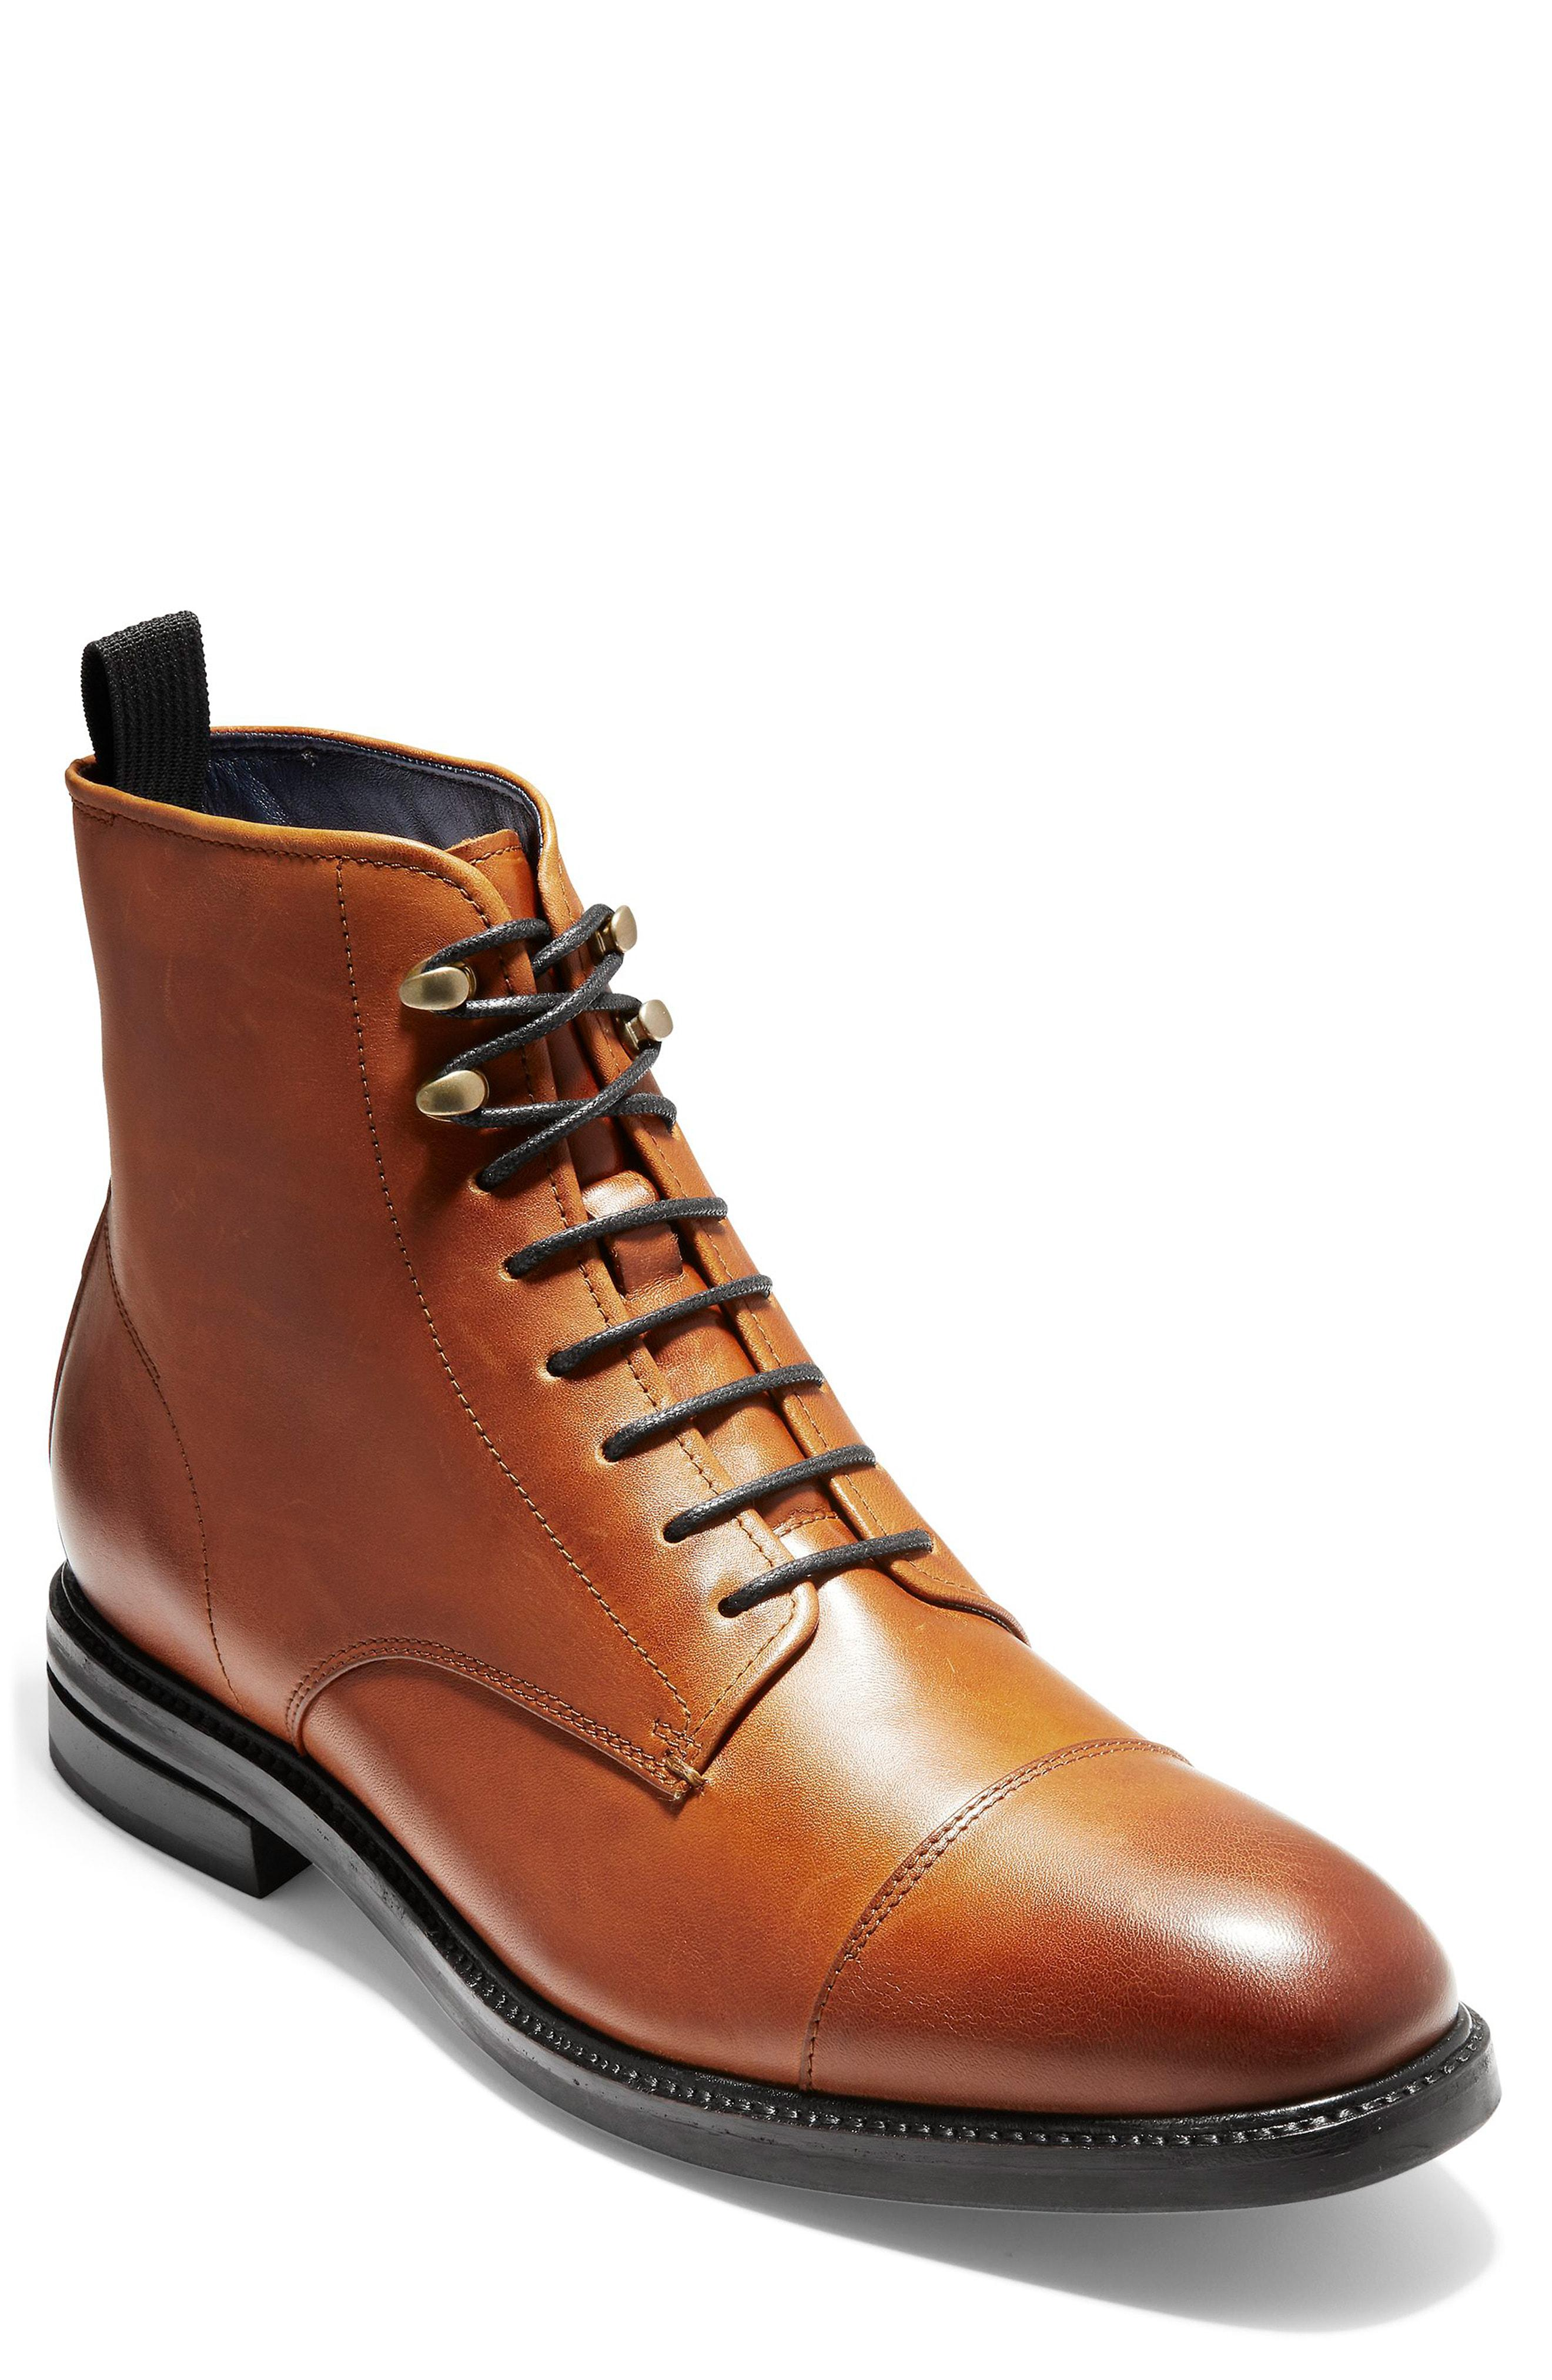 Wagner Grand Cap Toe Boots - Brown